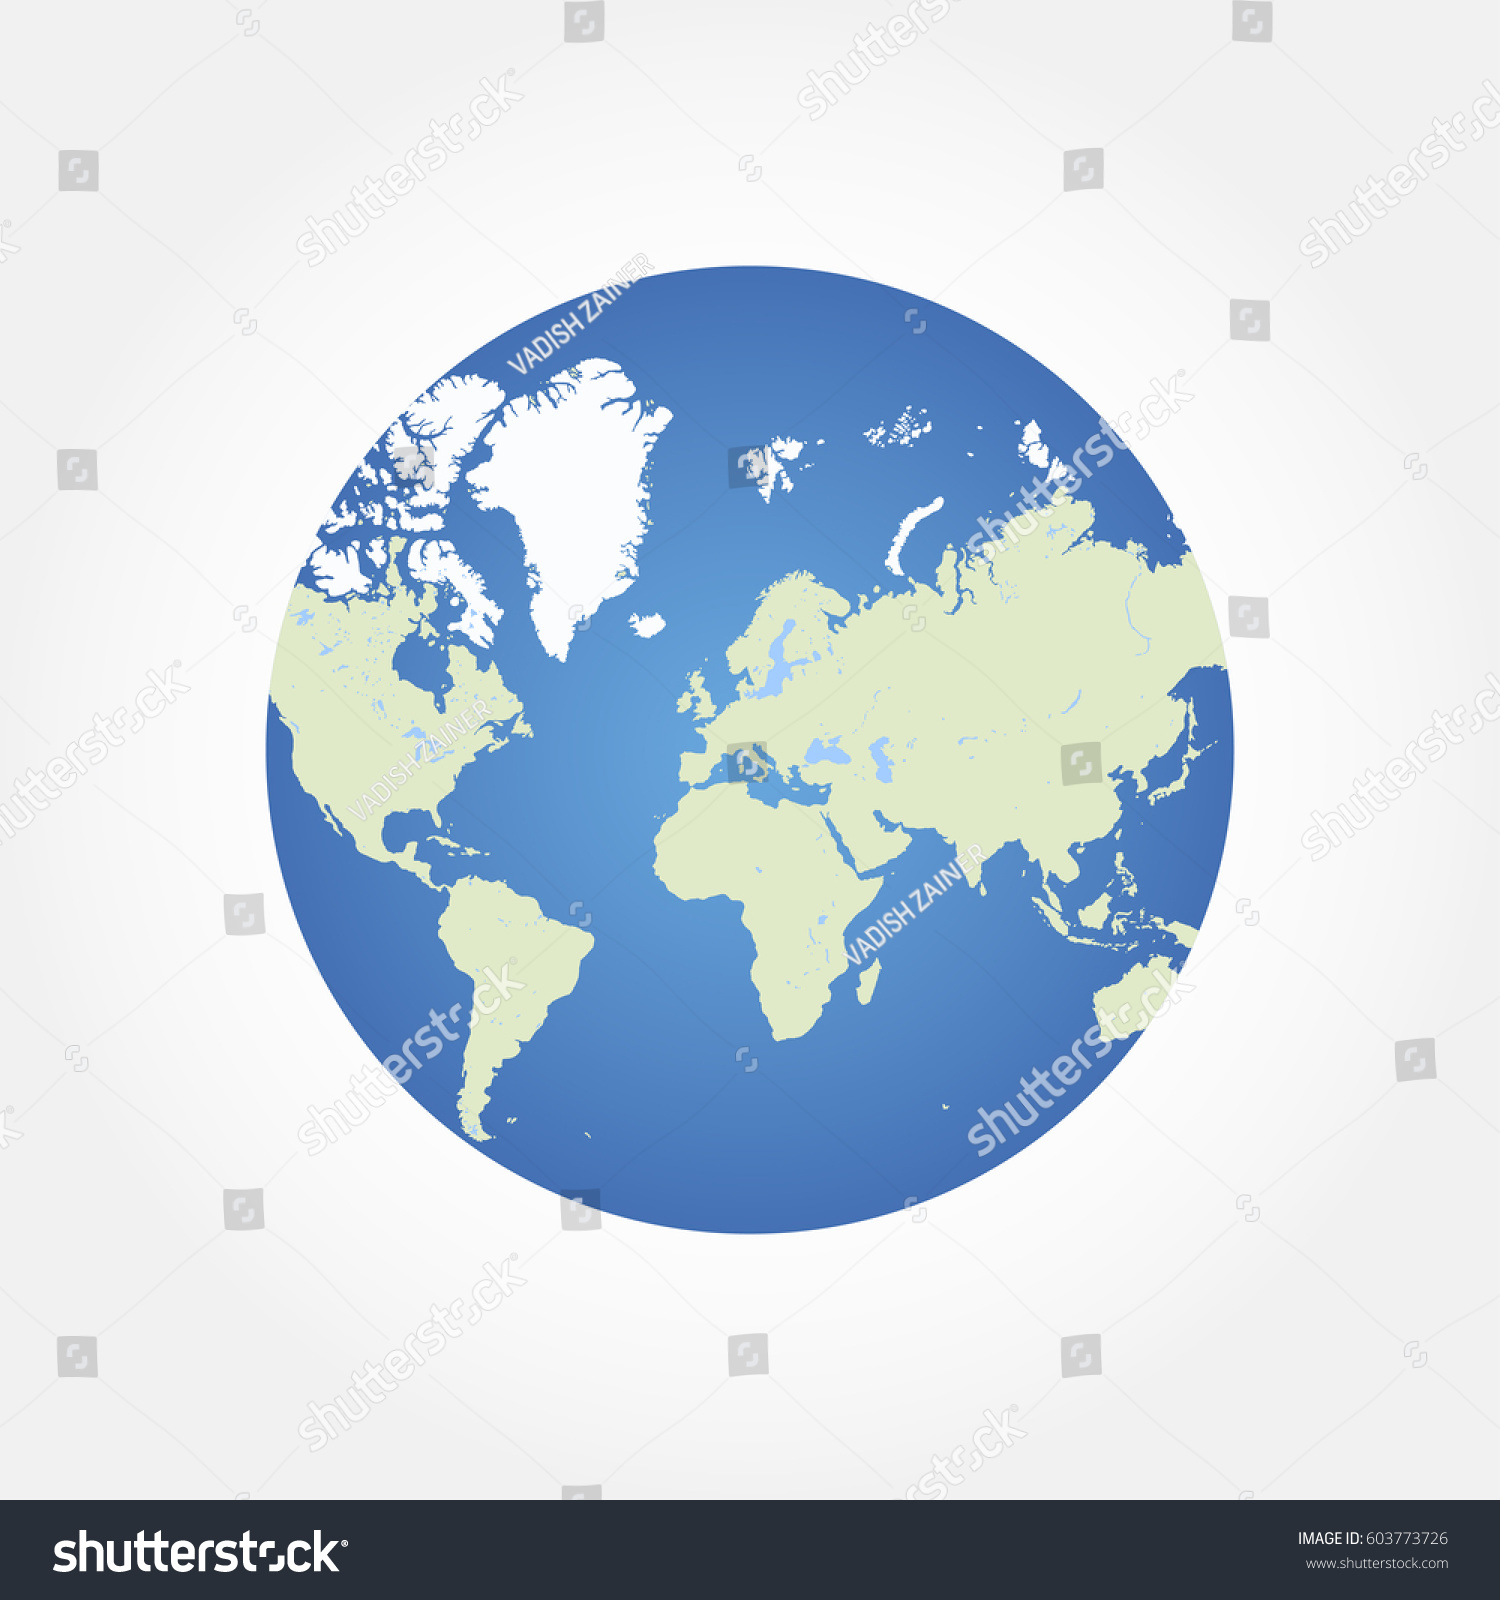 Round Globe World Map Flat Vector Stock Vector - Round world map image